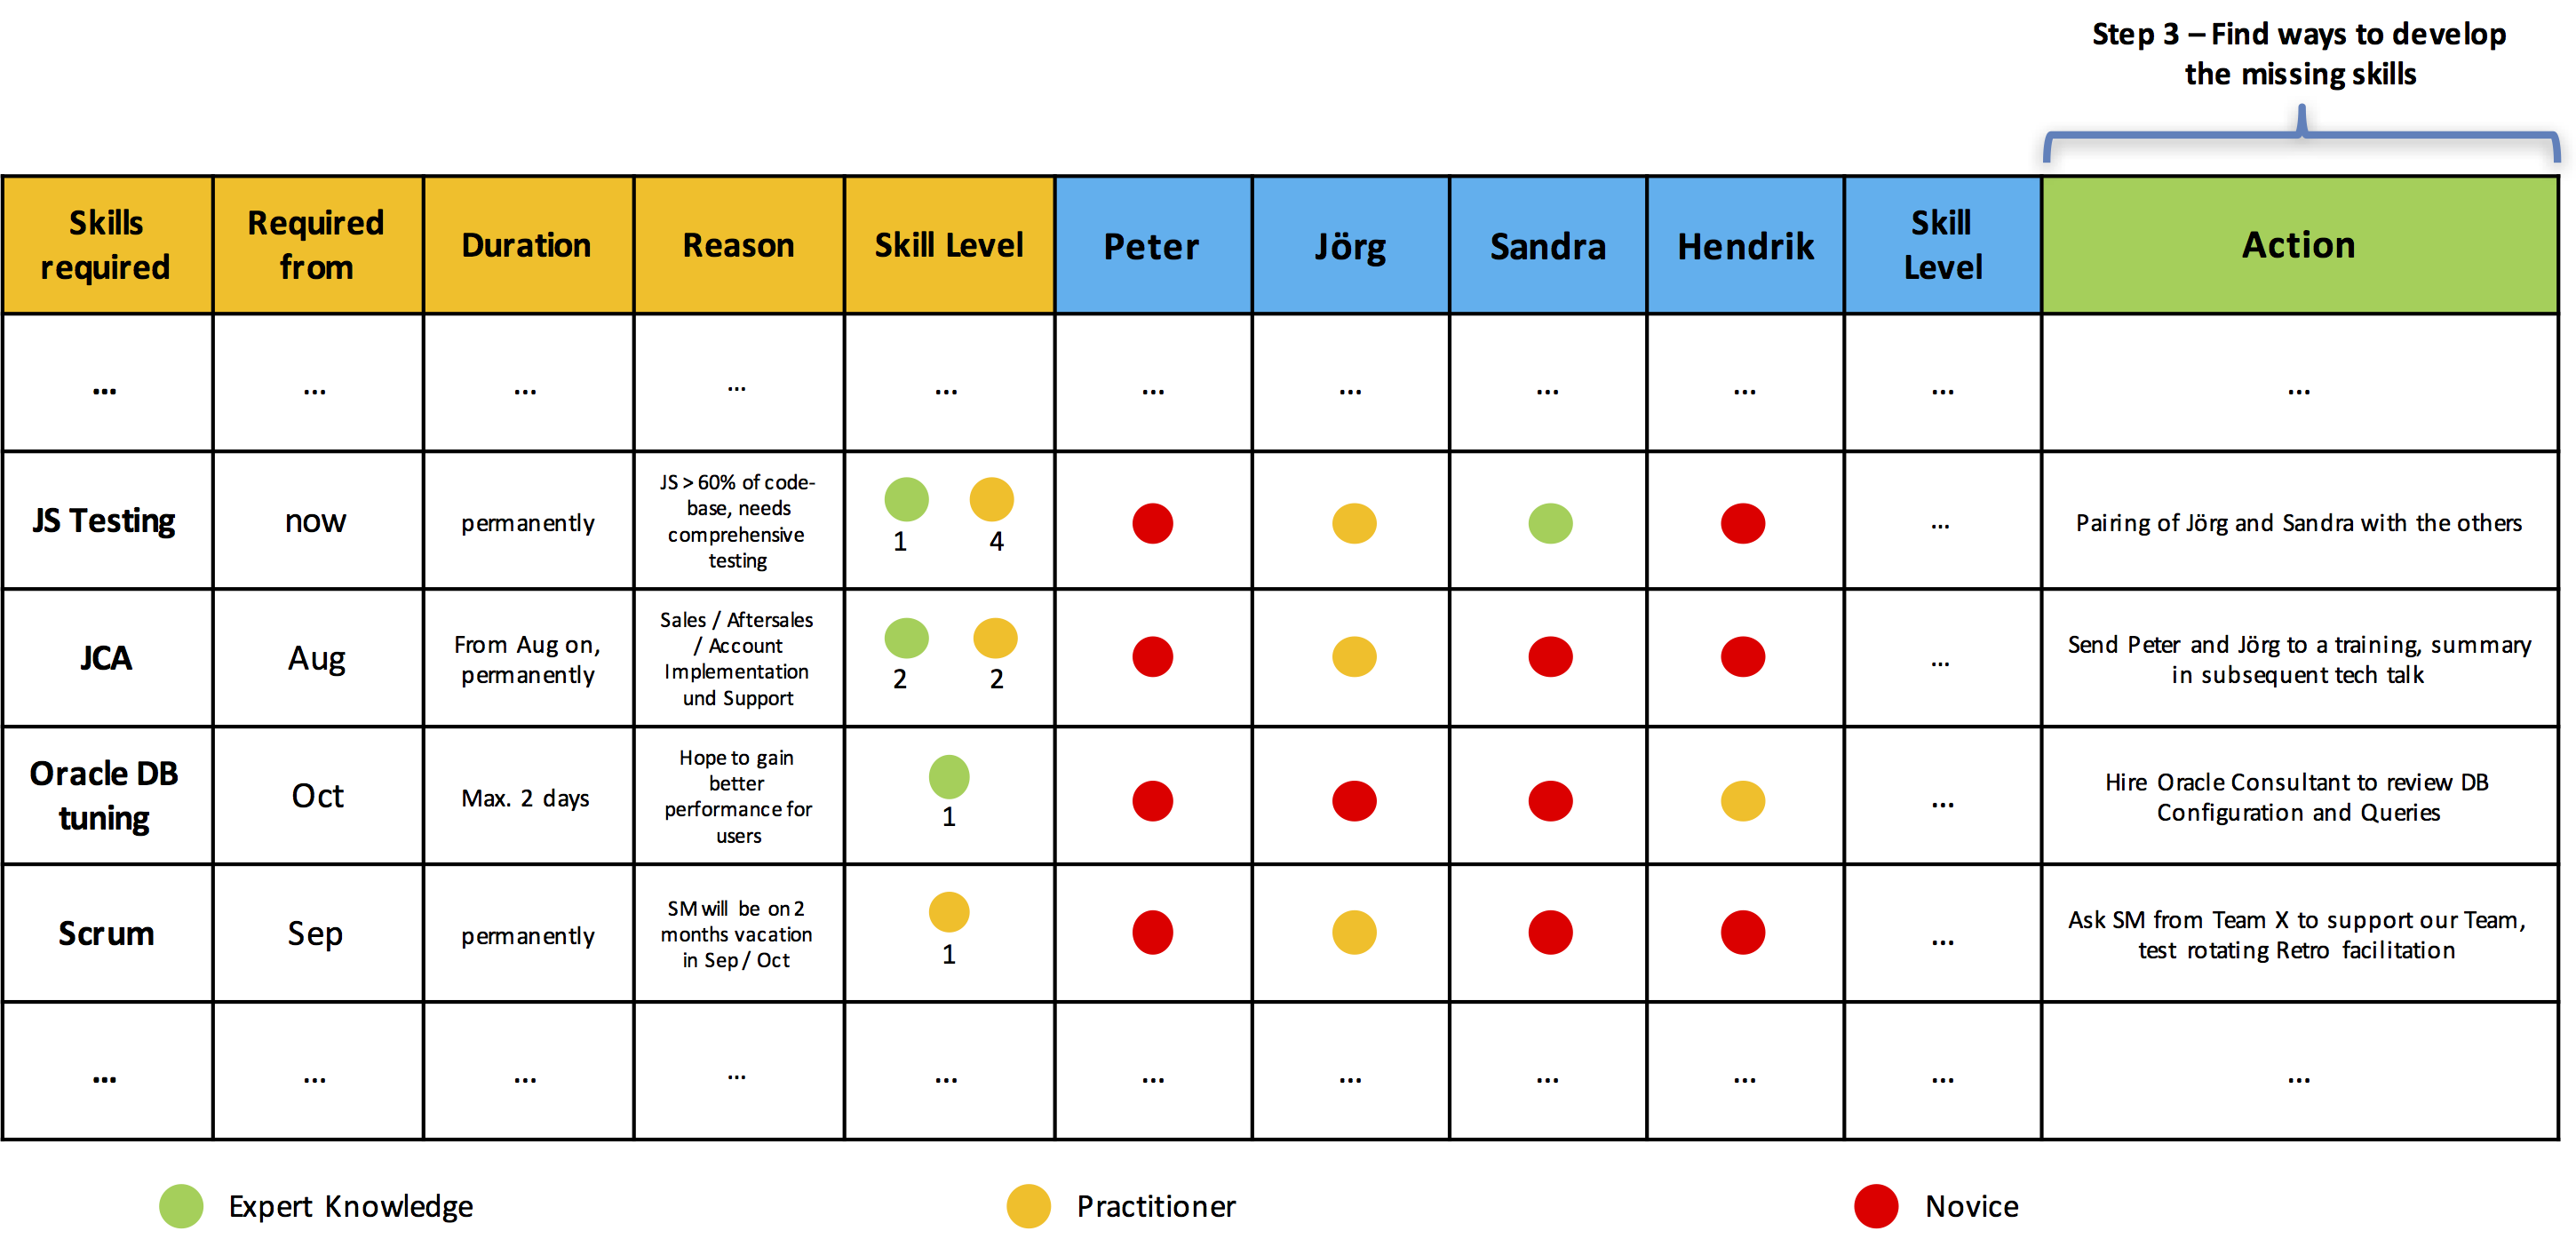 Skill Matrix - Step 3